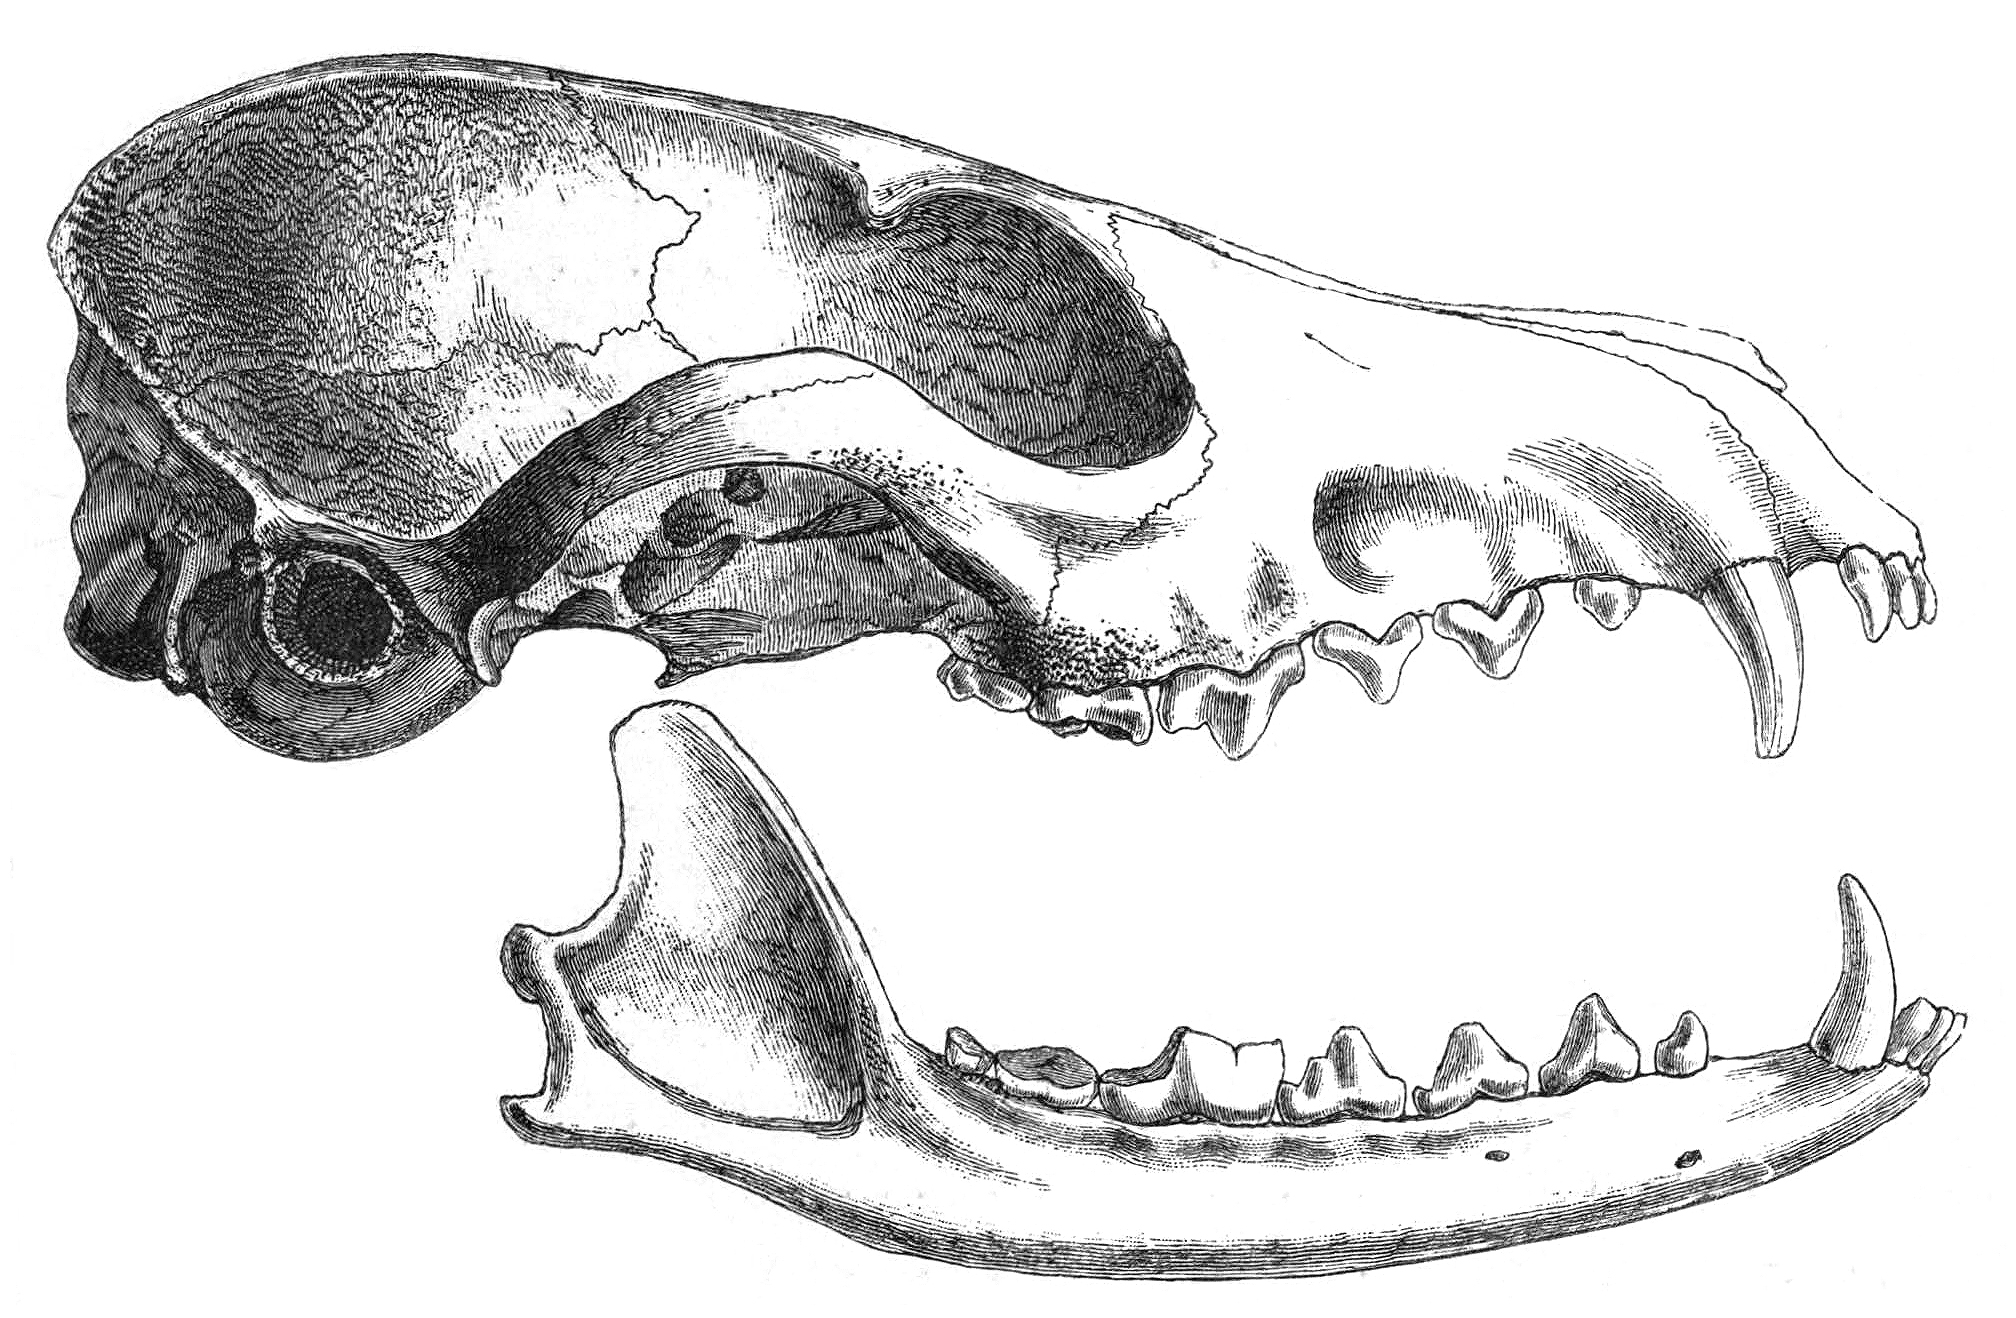 https://upload.wikimedia.org/wikipedia/commons/d/d8/Vpusillaskull.jpg